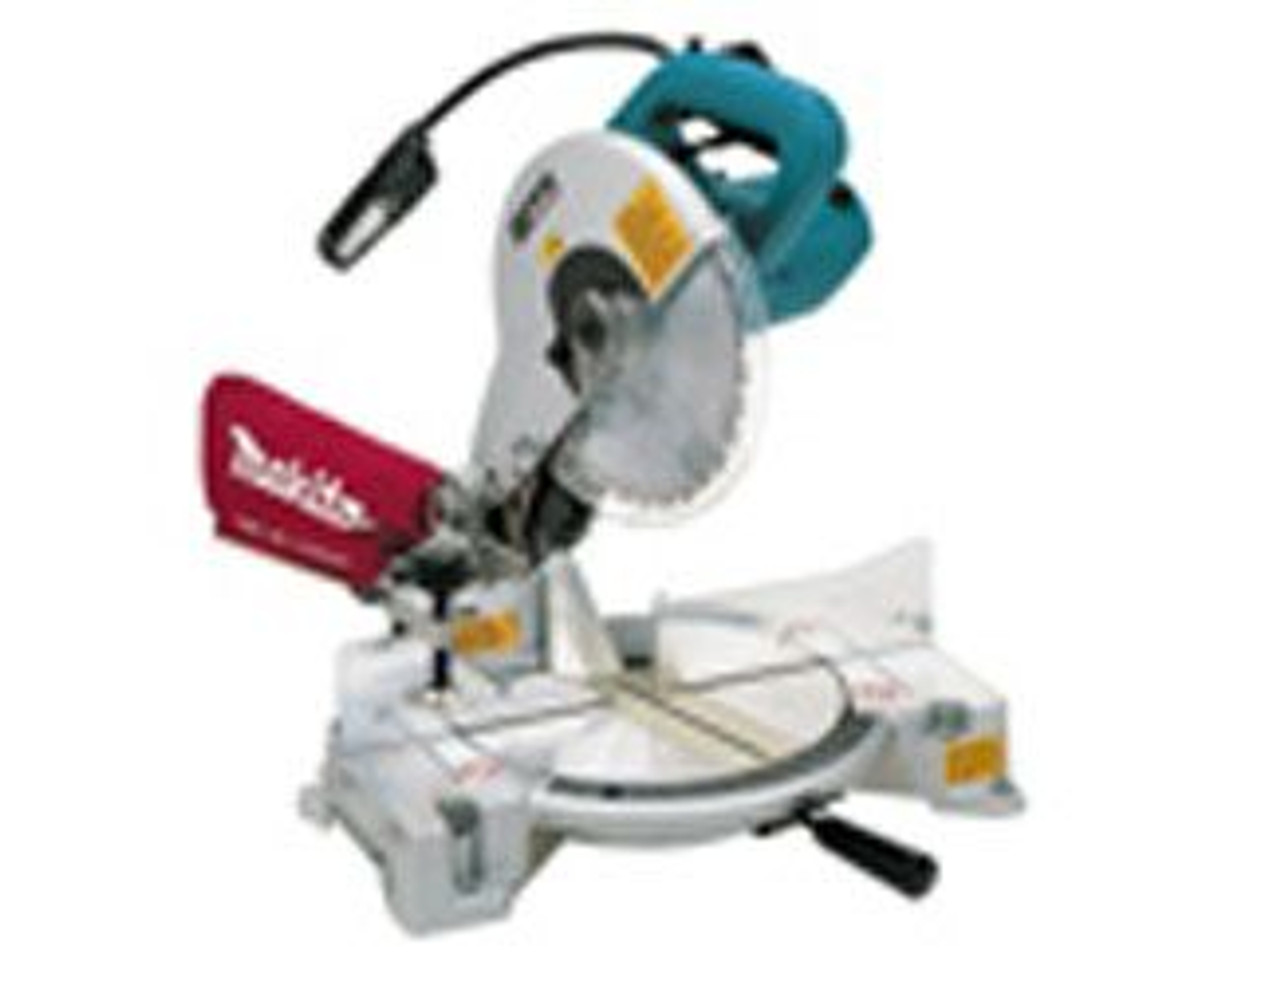 Makita 10 in. Compound Miter Saw with Fluorescent Light LS1040F